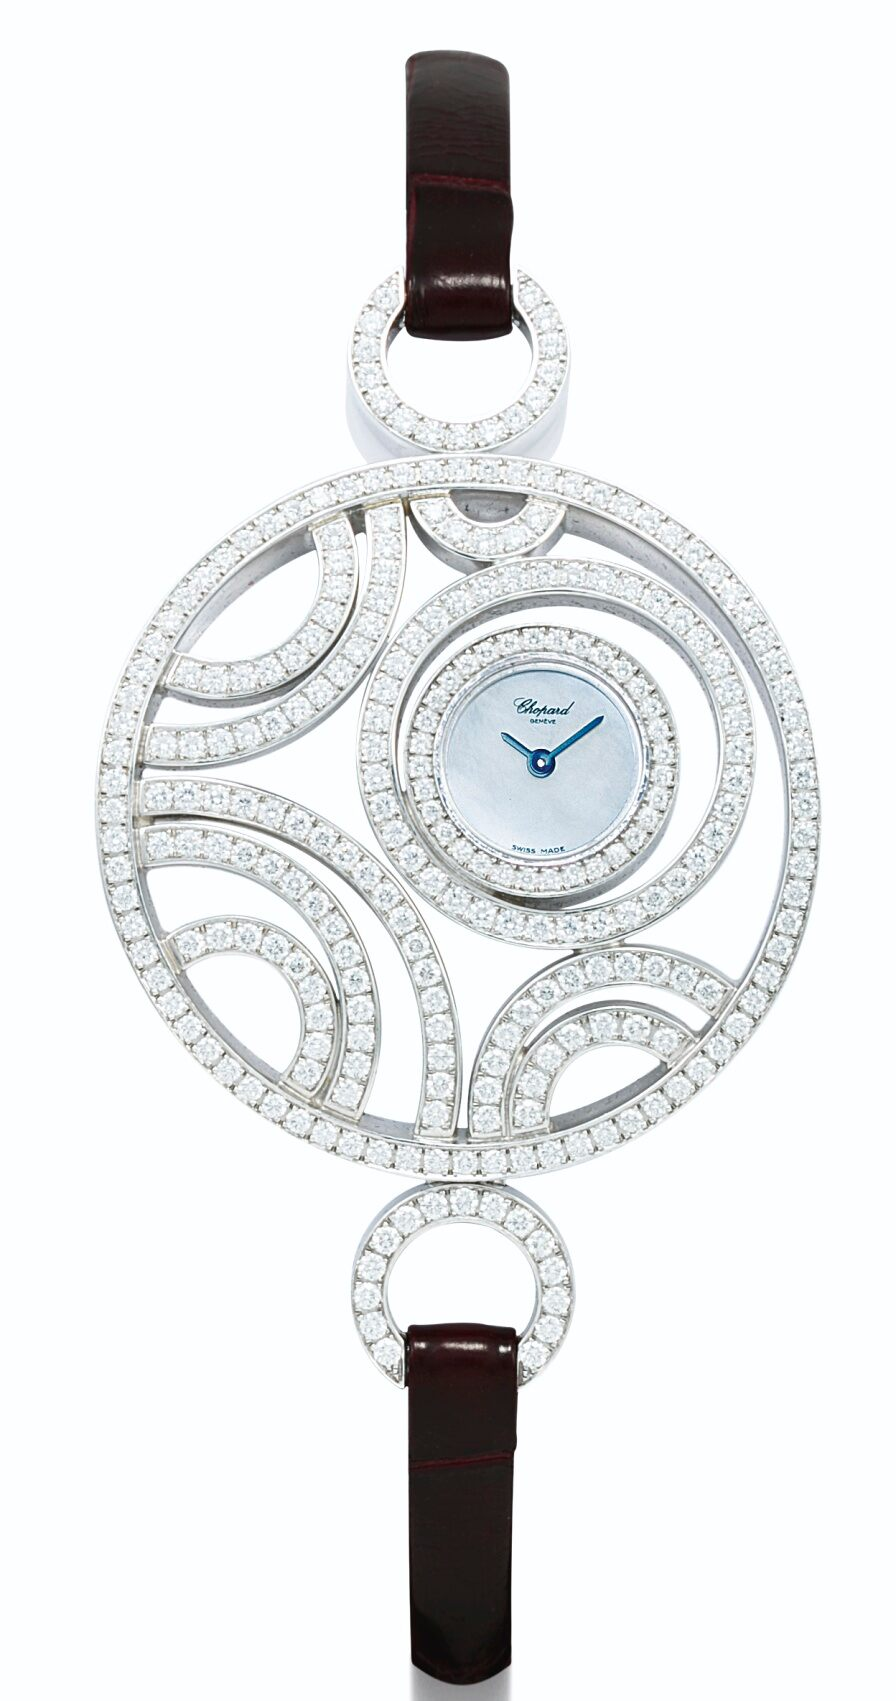 BEST WOMEN'S Bling WATCHES 2021 White Gold And Diamond-Set Wristwatch with MOTHER-OF-PEARL Dial By Chopard